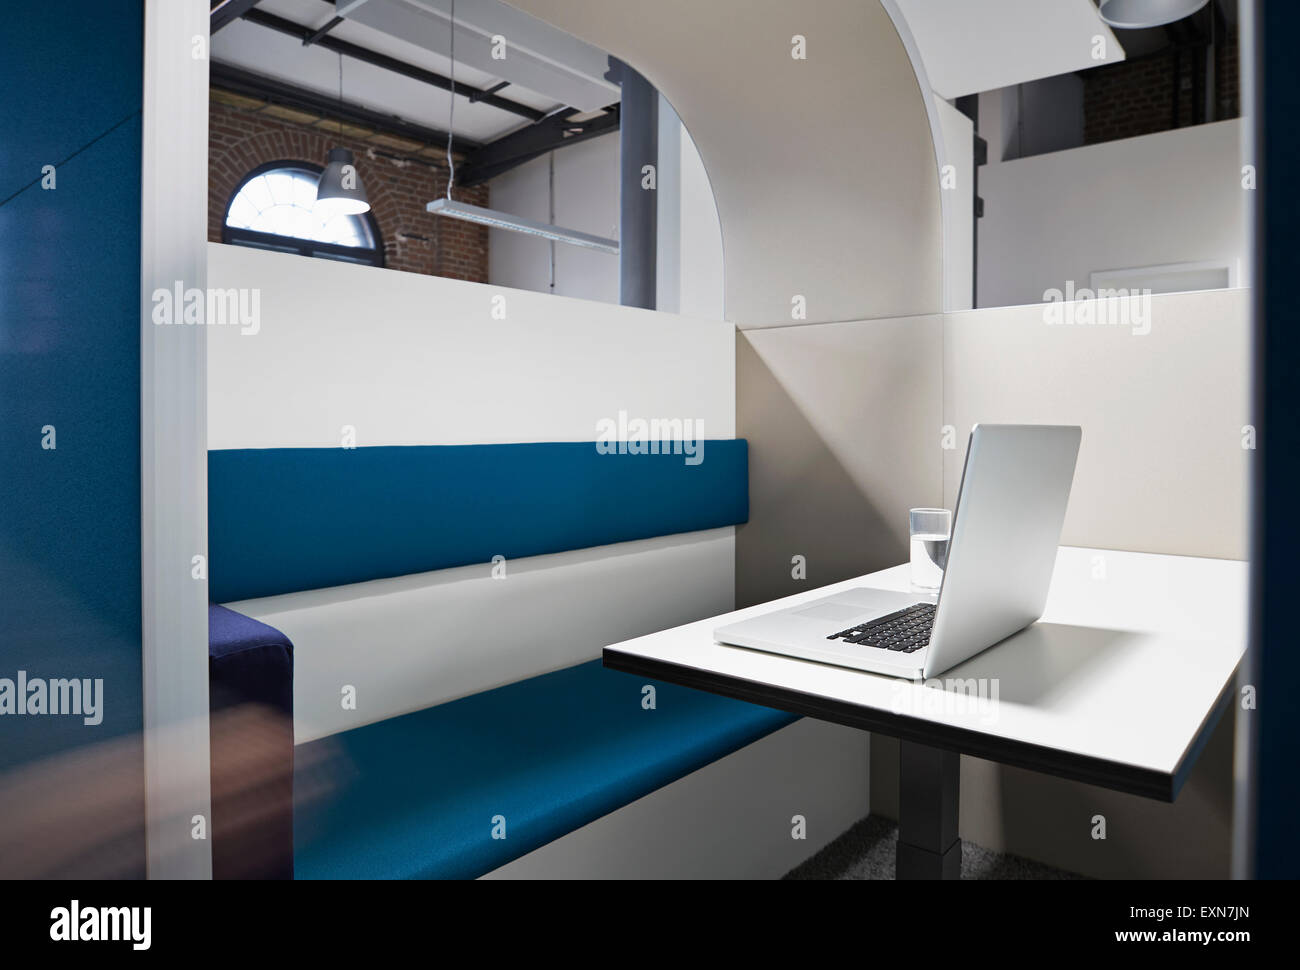 Modern office cubicle with noise protection partition wall - Stock Image